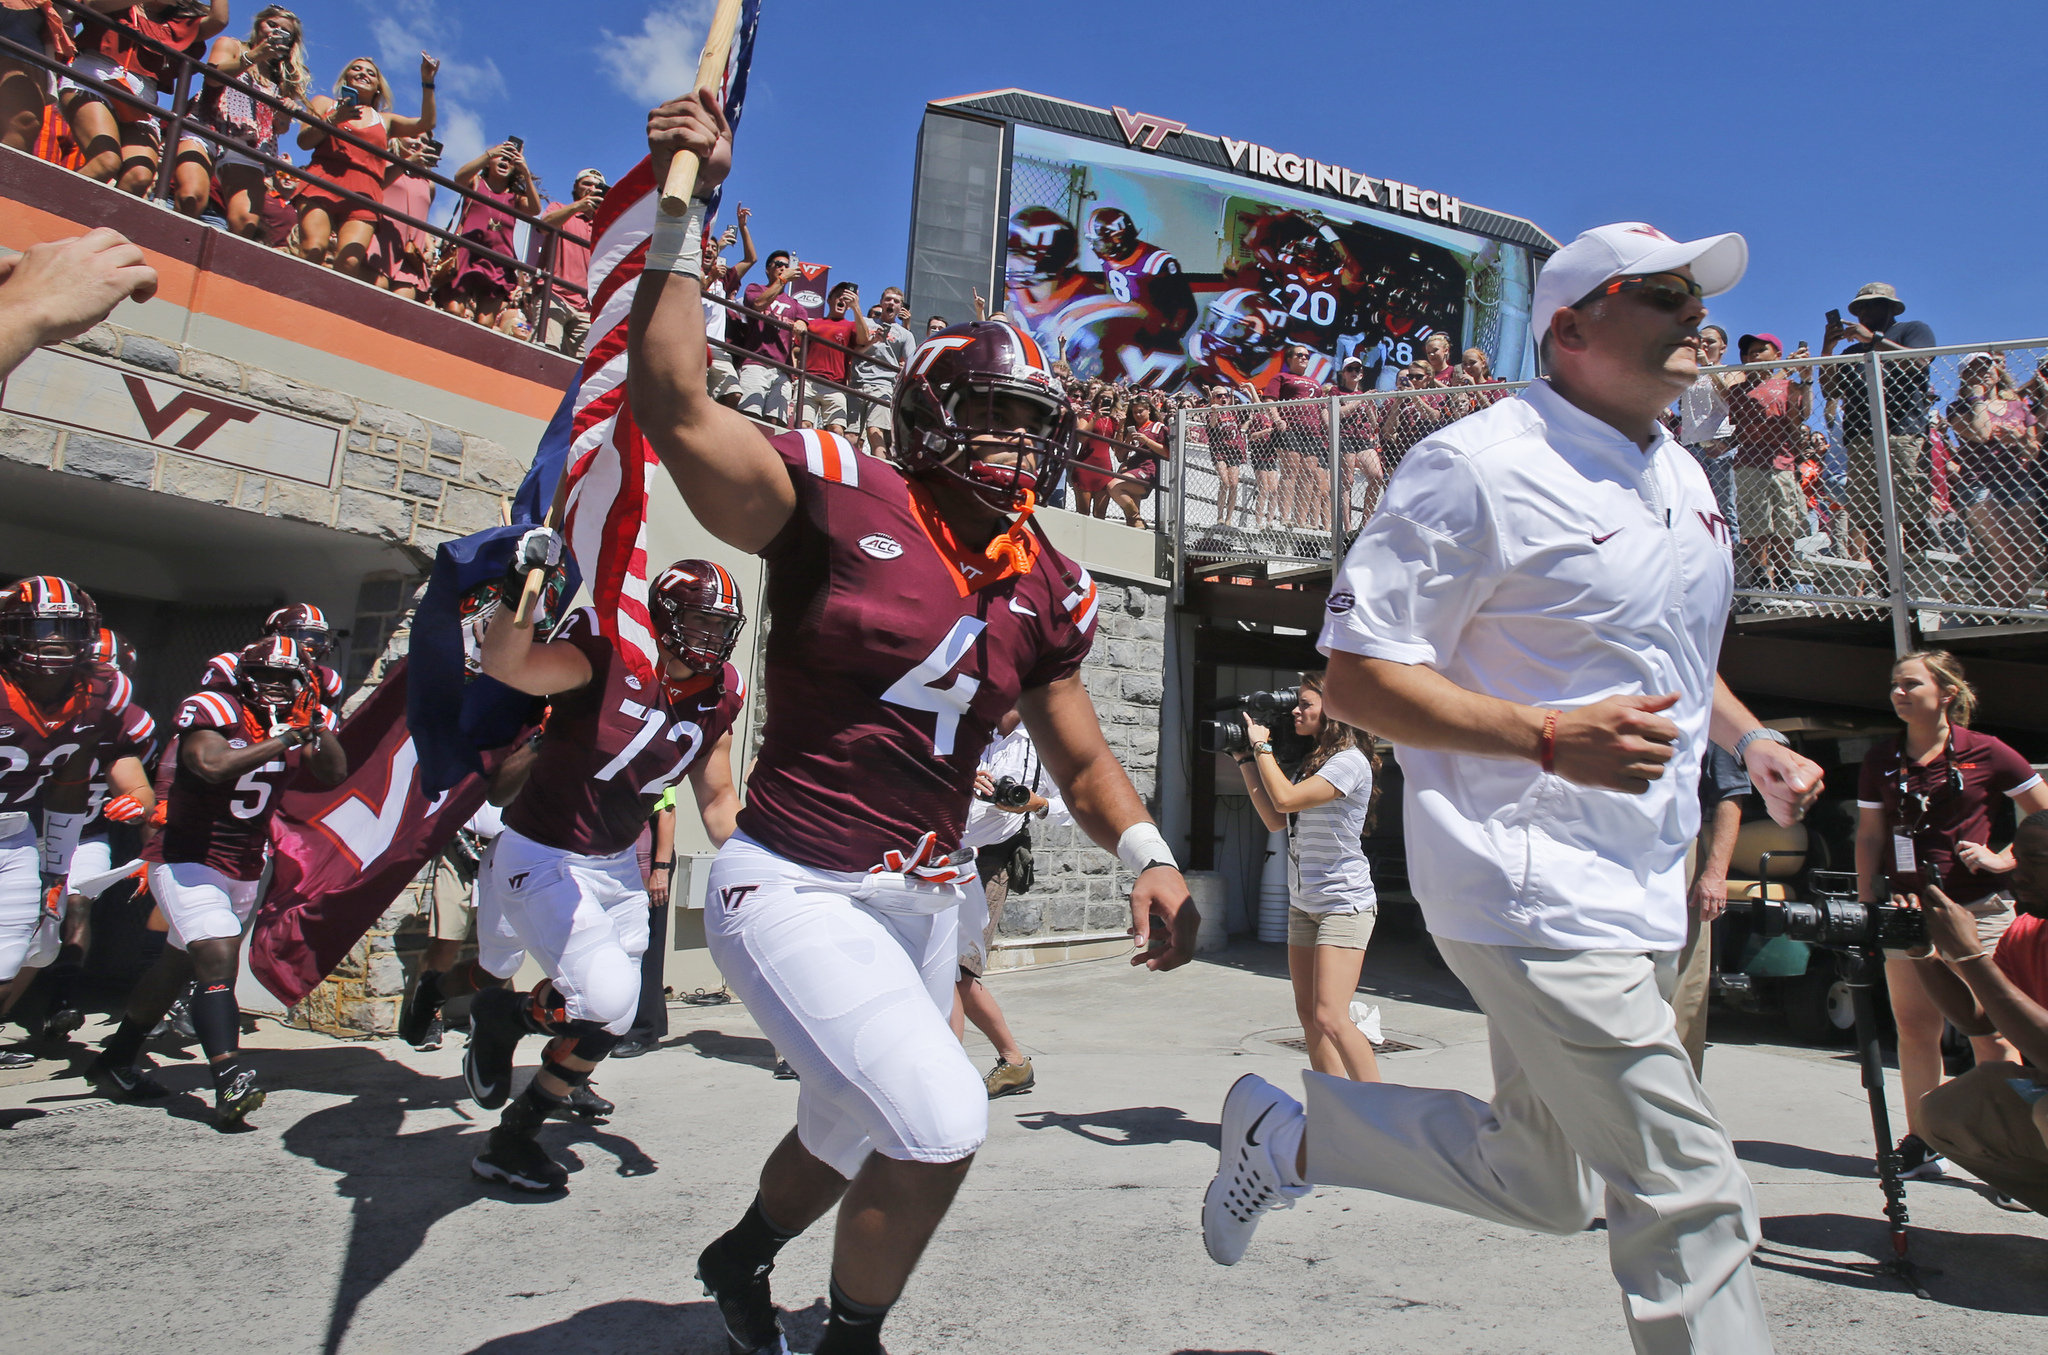 football virginia tech kickoff time set for 3 45 p m  football virginia tech kickoff time set for 3 45 p m com